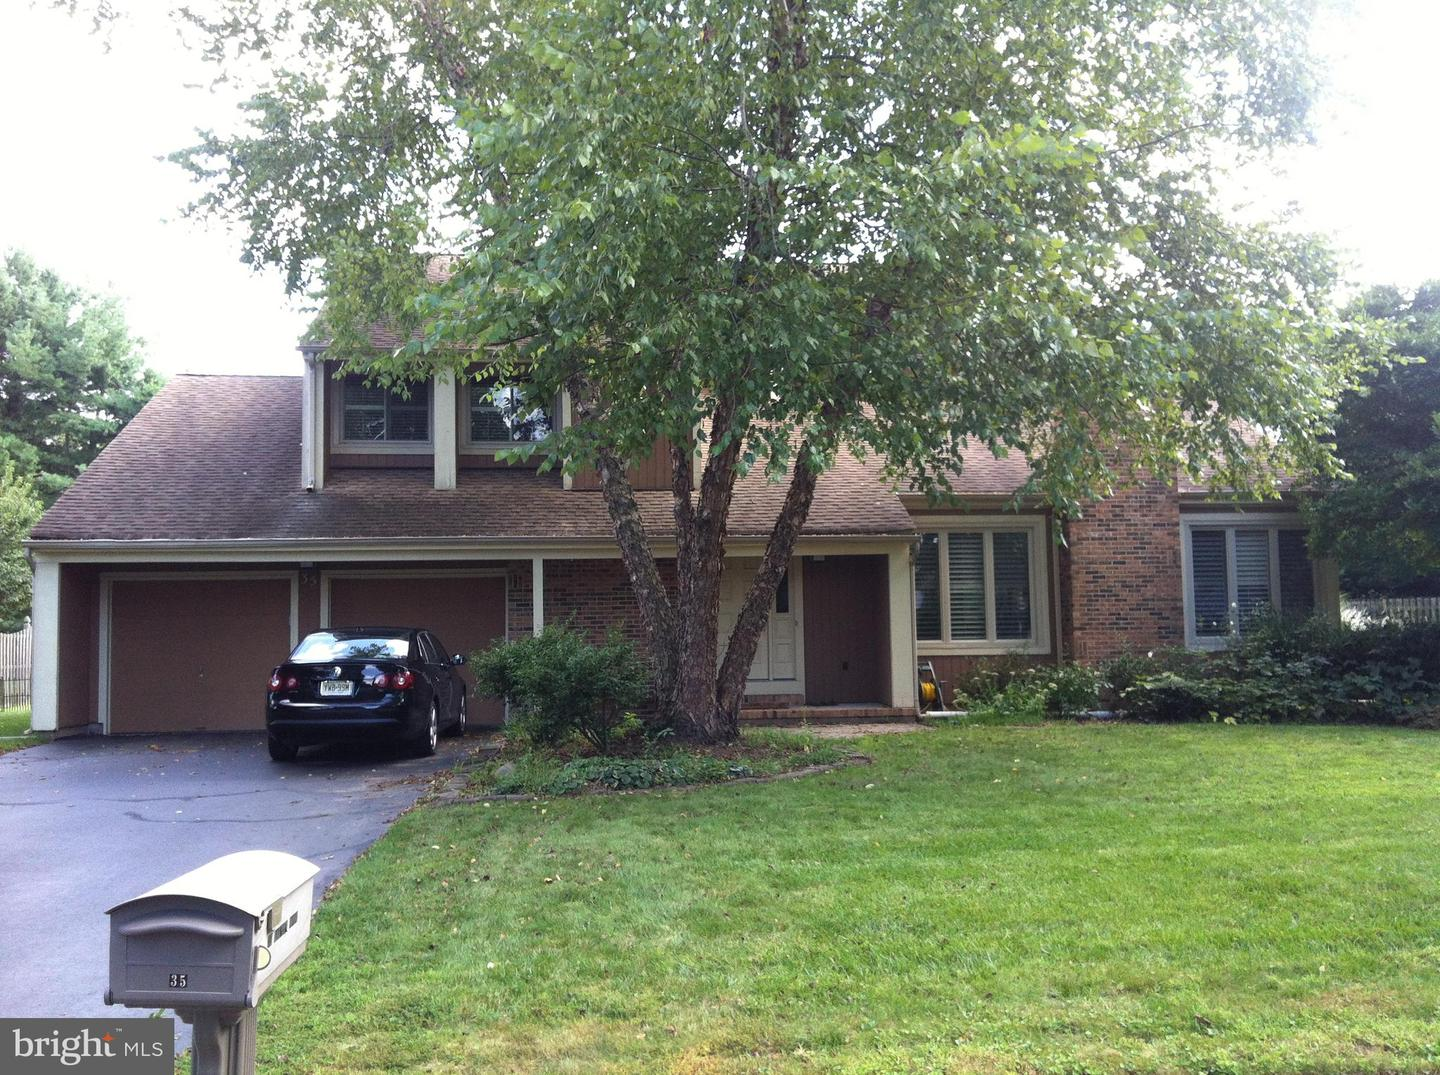 Property for Sale at 35 LAUREL WOOD Drive Lawrenceville, New Jersey 08648 United States